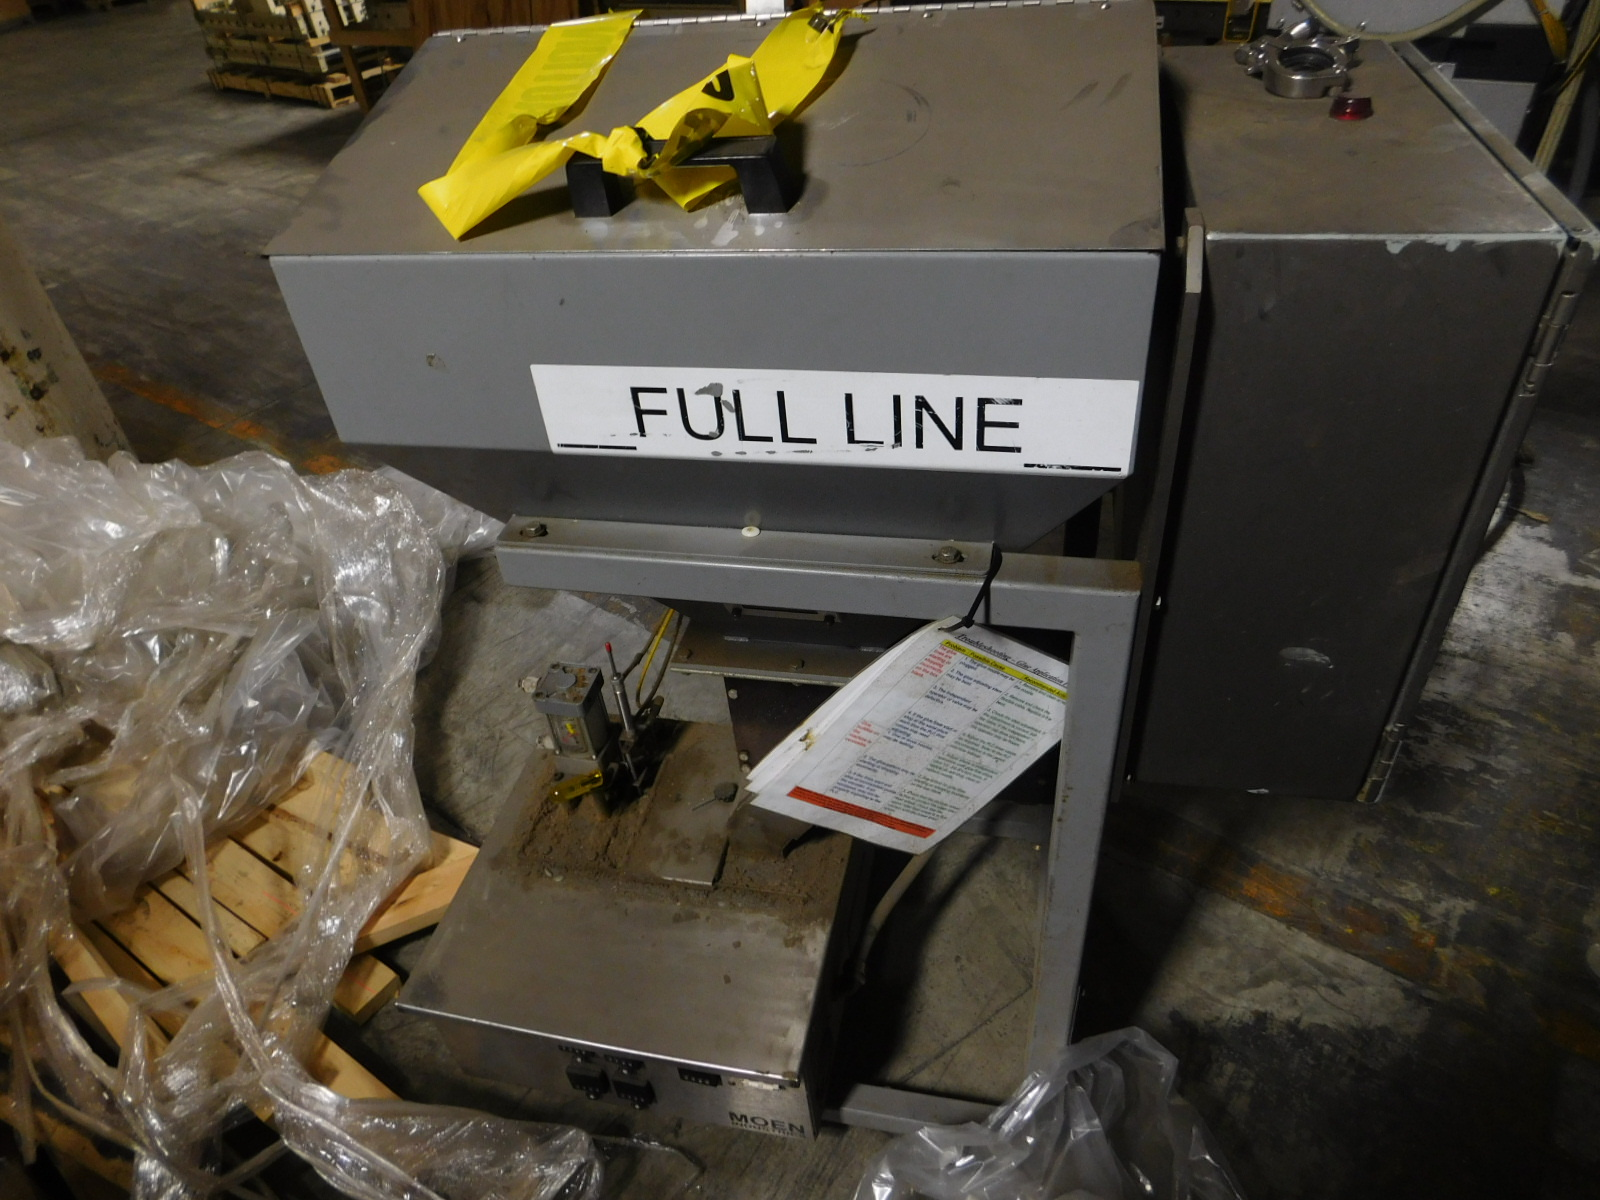 Lot 23 - Moem Glue Glue Melter ,240V,15AMPS, PHASE 3, M3A PF106-BIFQ,SN:1049,MFG. 3-2003 :equipment located